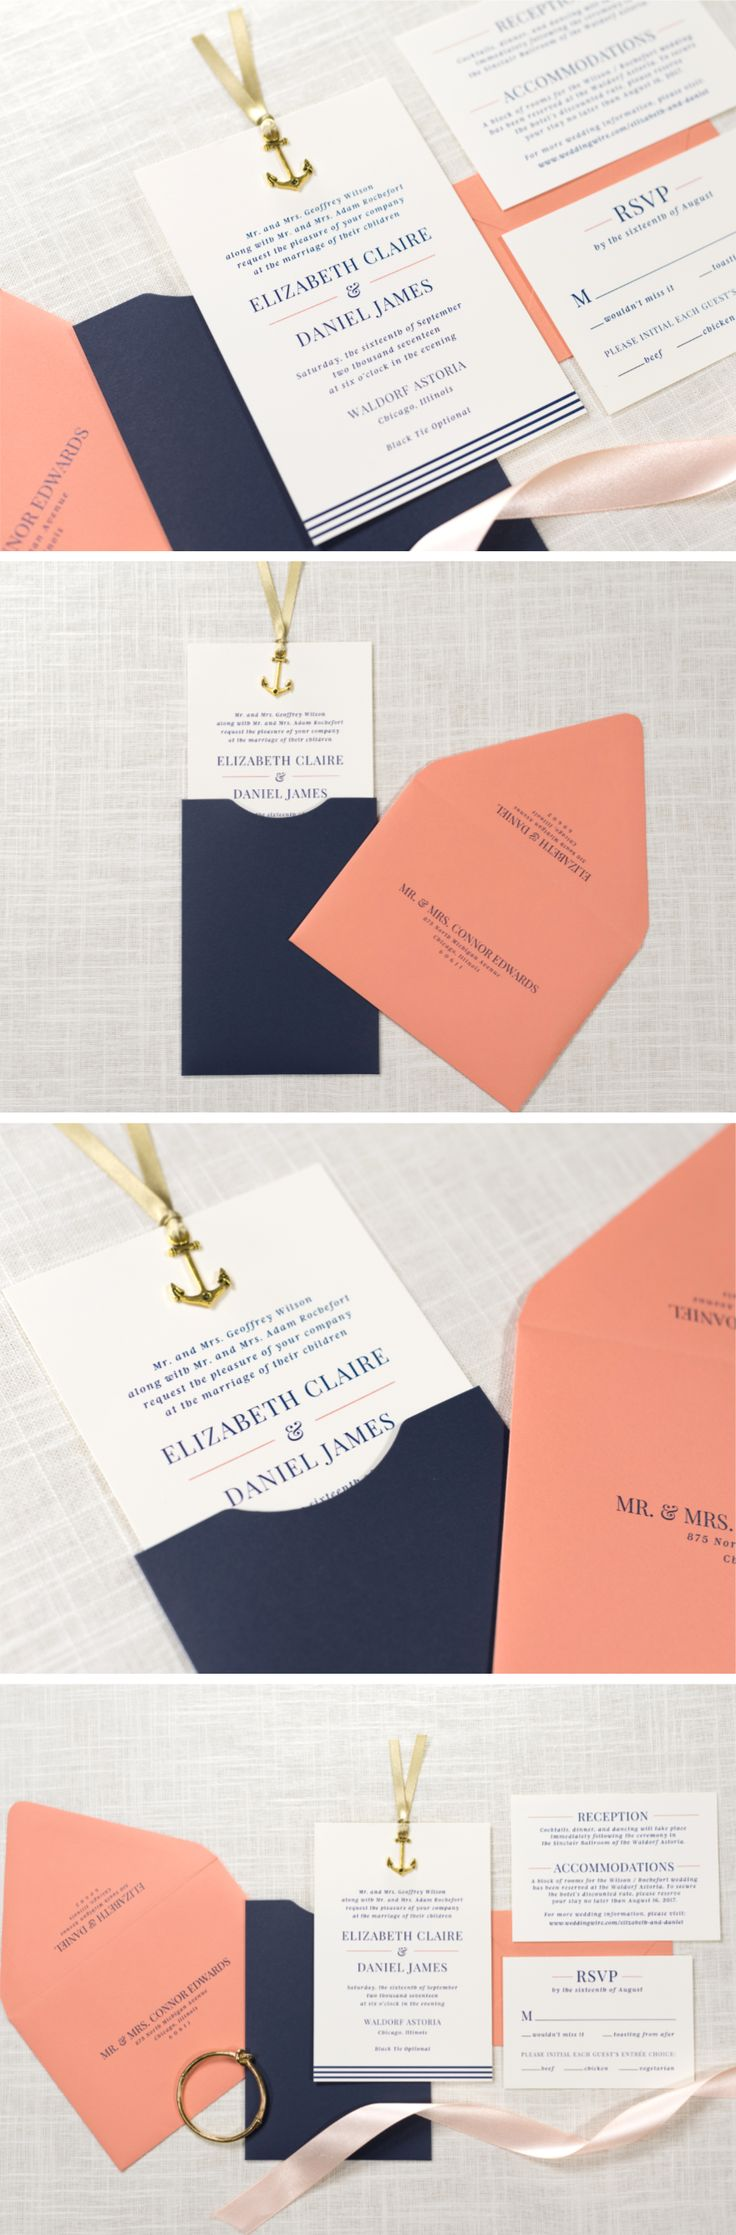 Sliding Wedding Invitation with Anchor Charm Embellishment